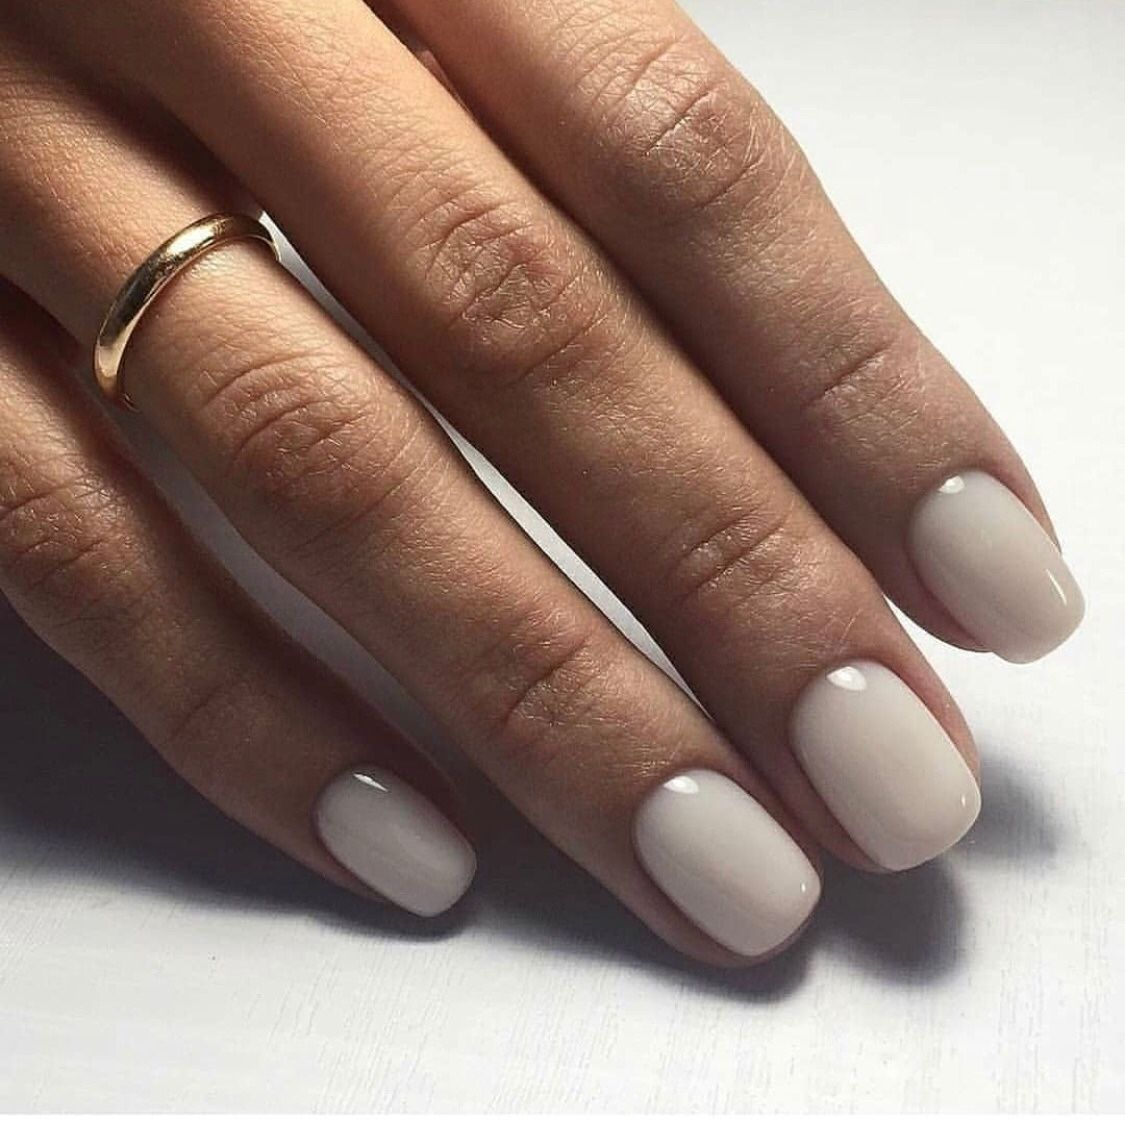 Gorgeous Milky Nail Color With Images Trendy Nails Manicure